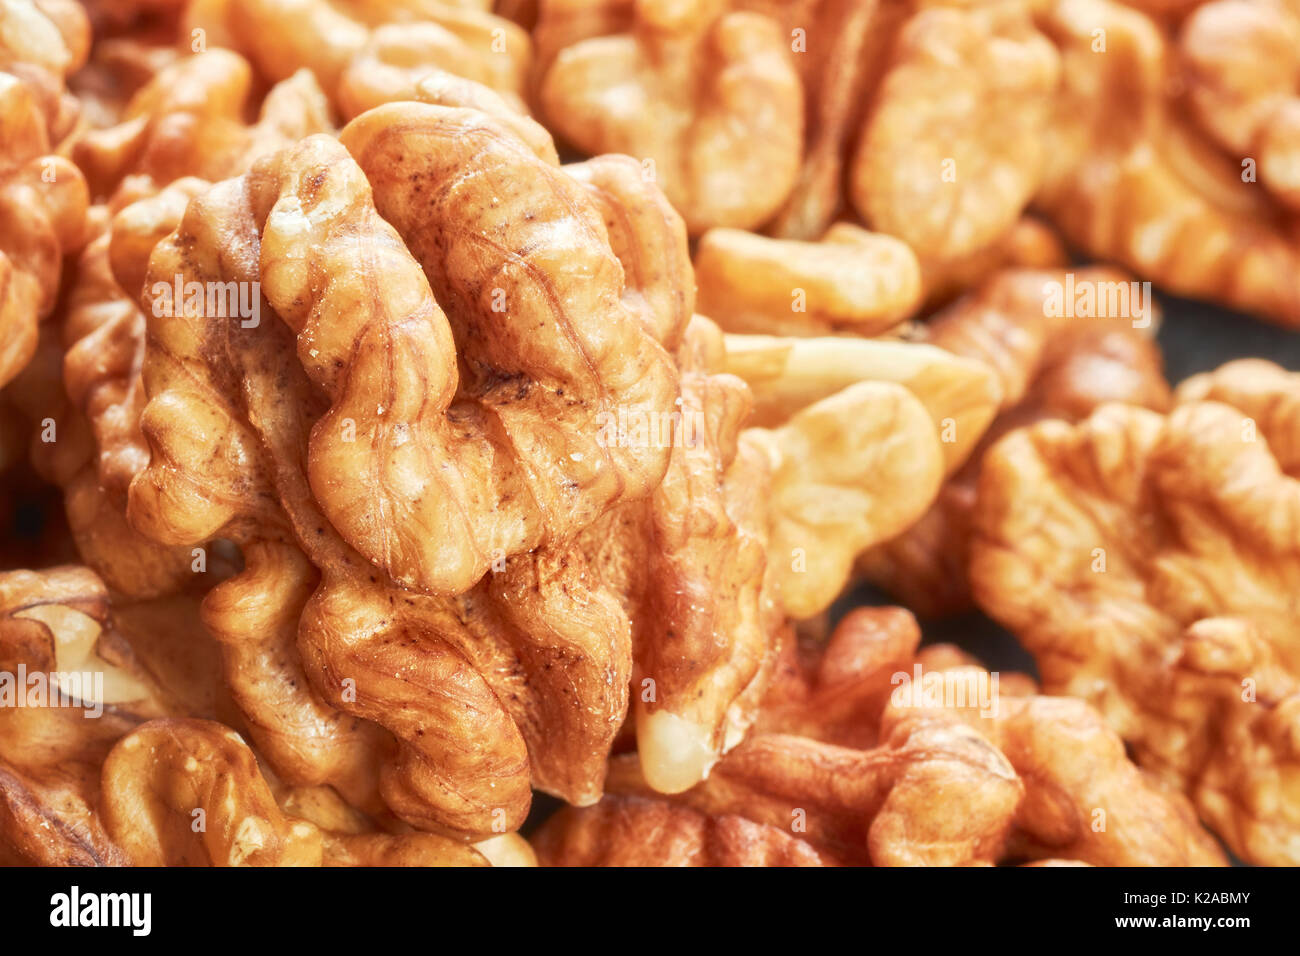 Extreme close up picture of walnuts, shallow depth of field. - Stock Image